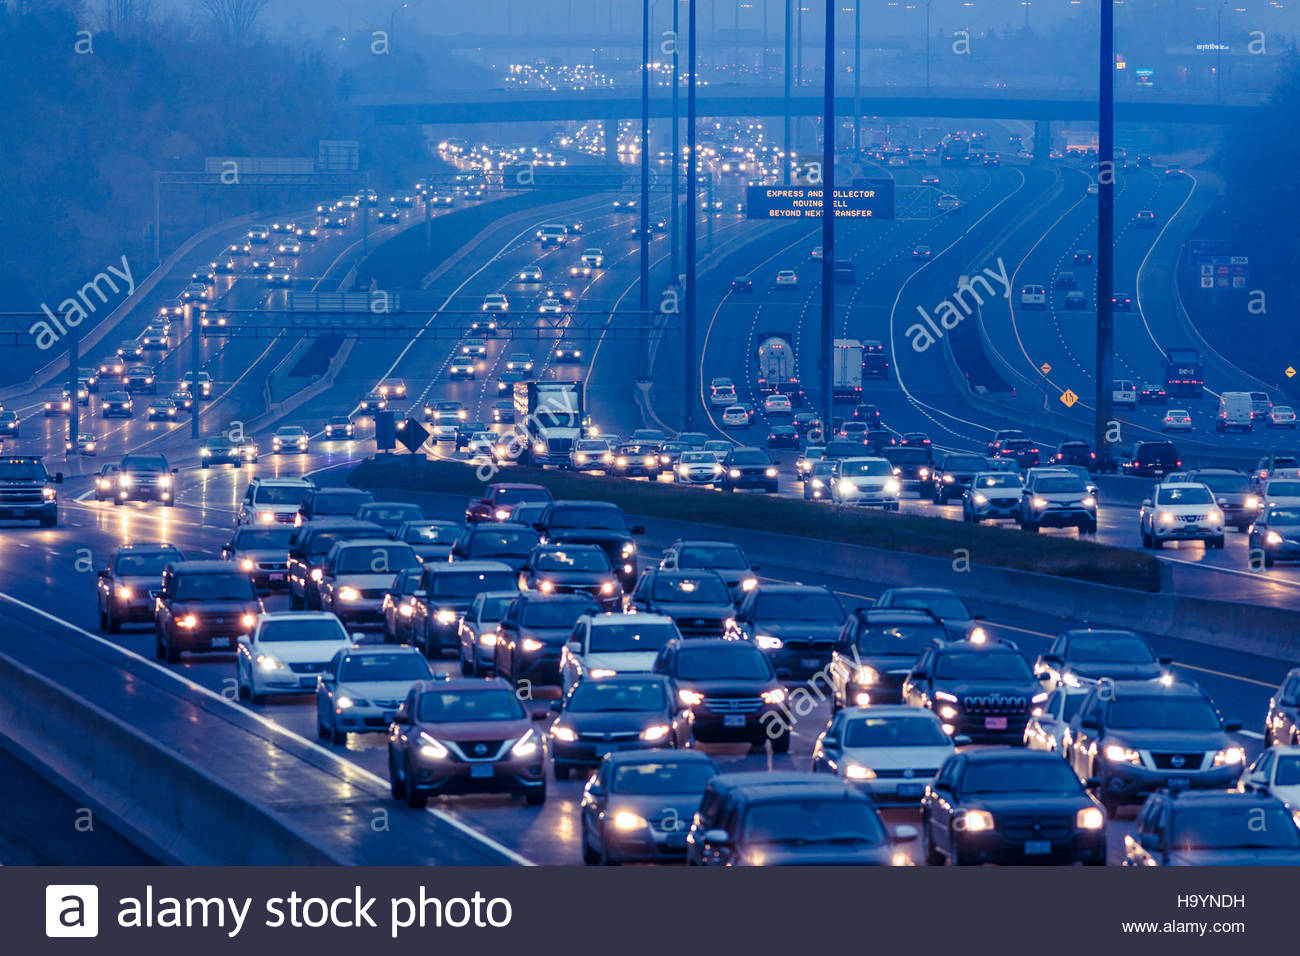 traffic morning rush hour heavy congestion commuting into Toronto rain about 7:45 AM on the 14 lane Highway 401 - Stock Image